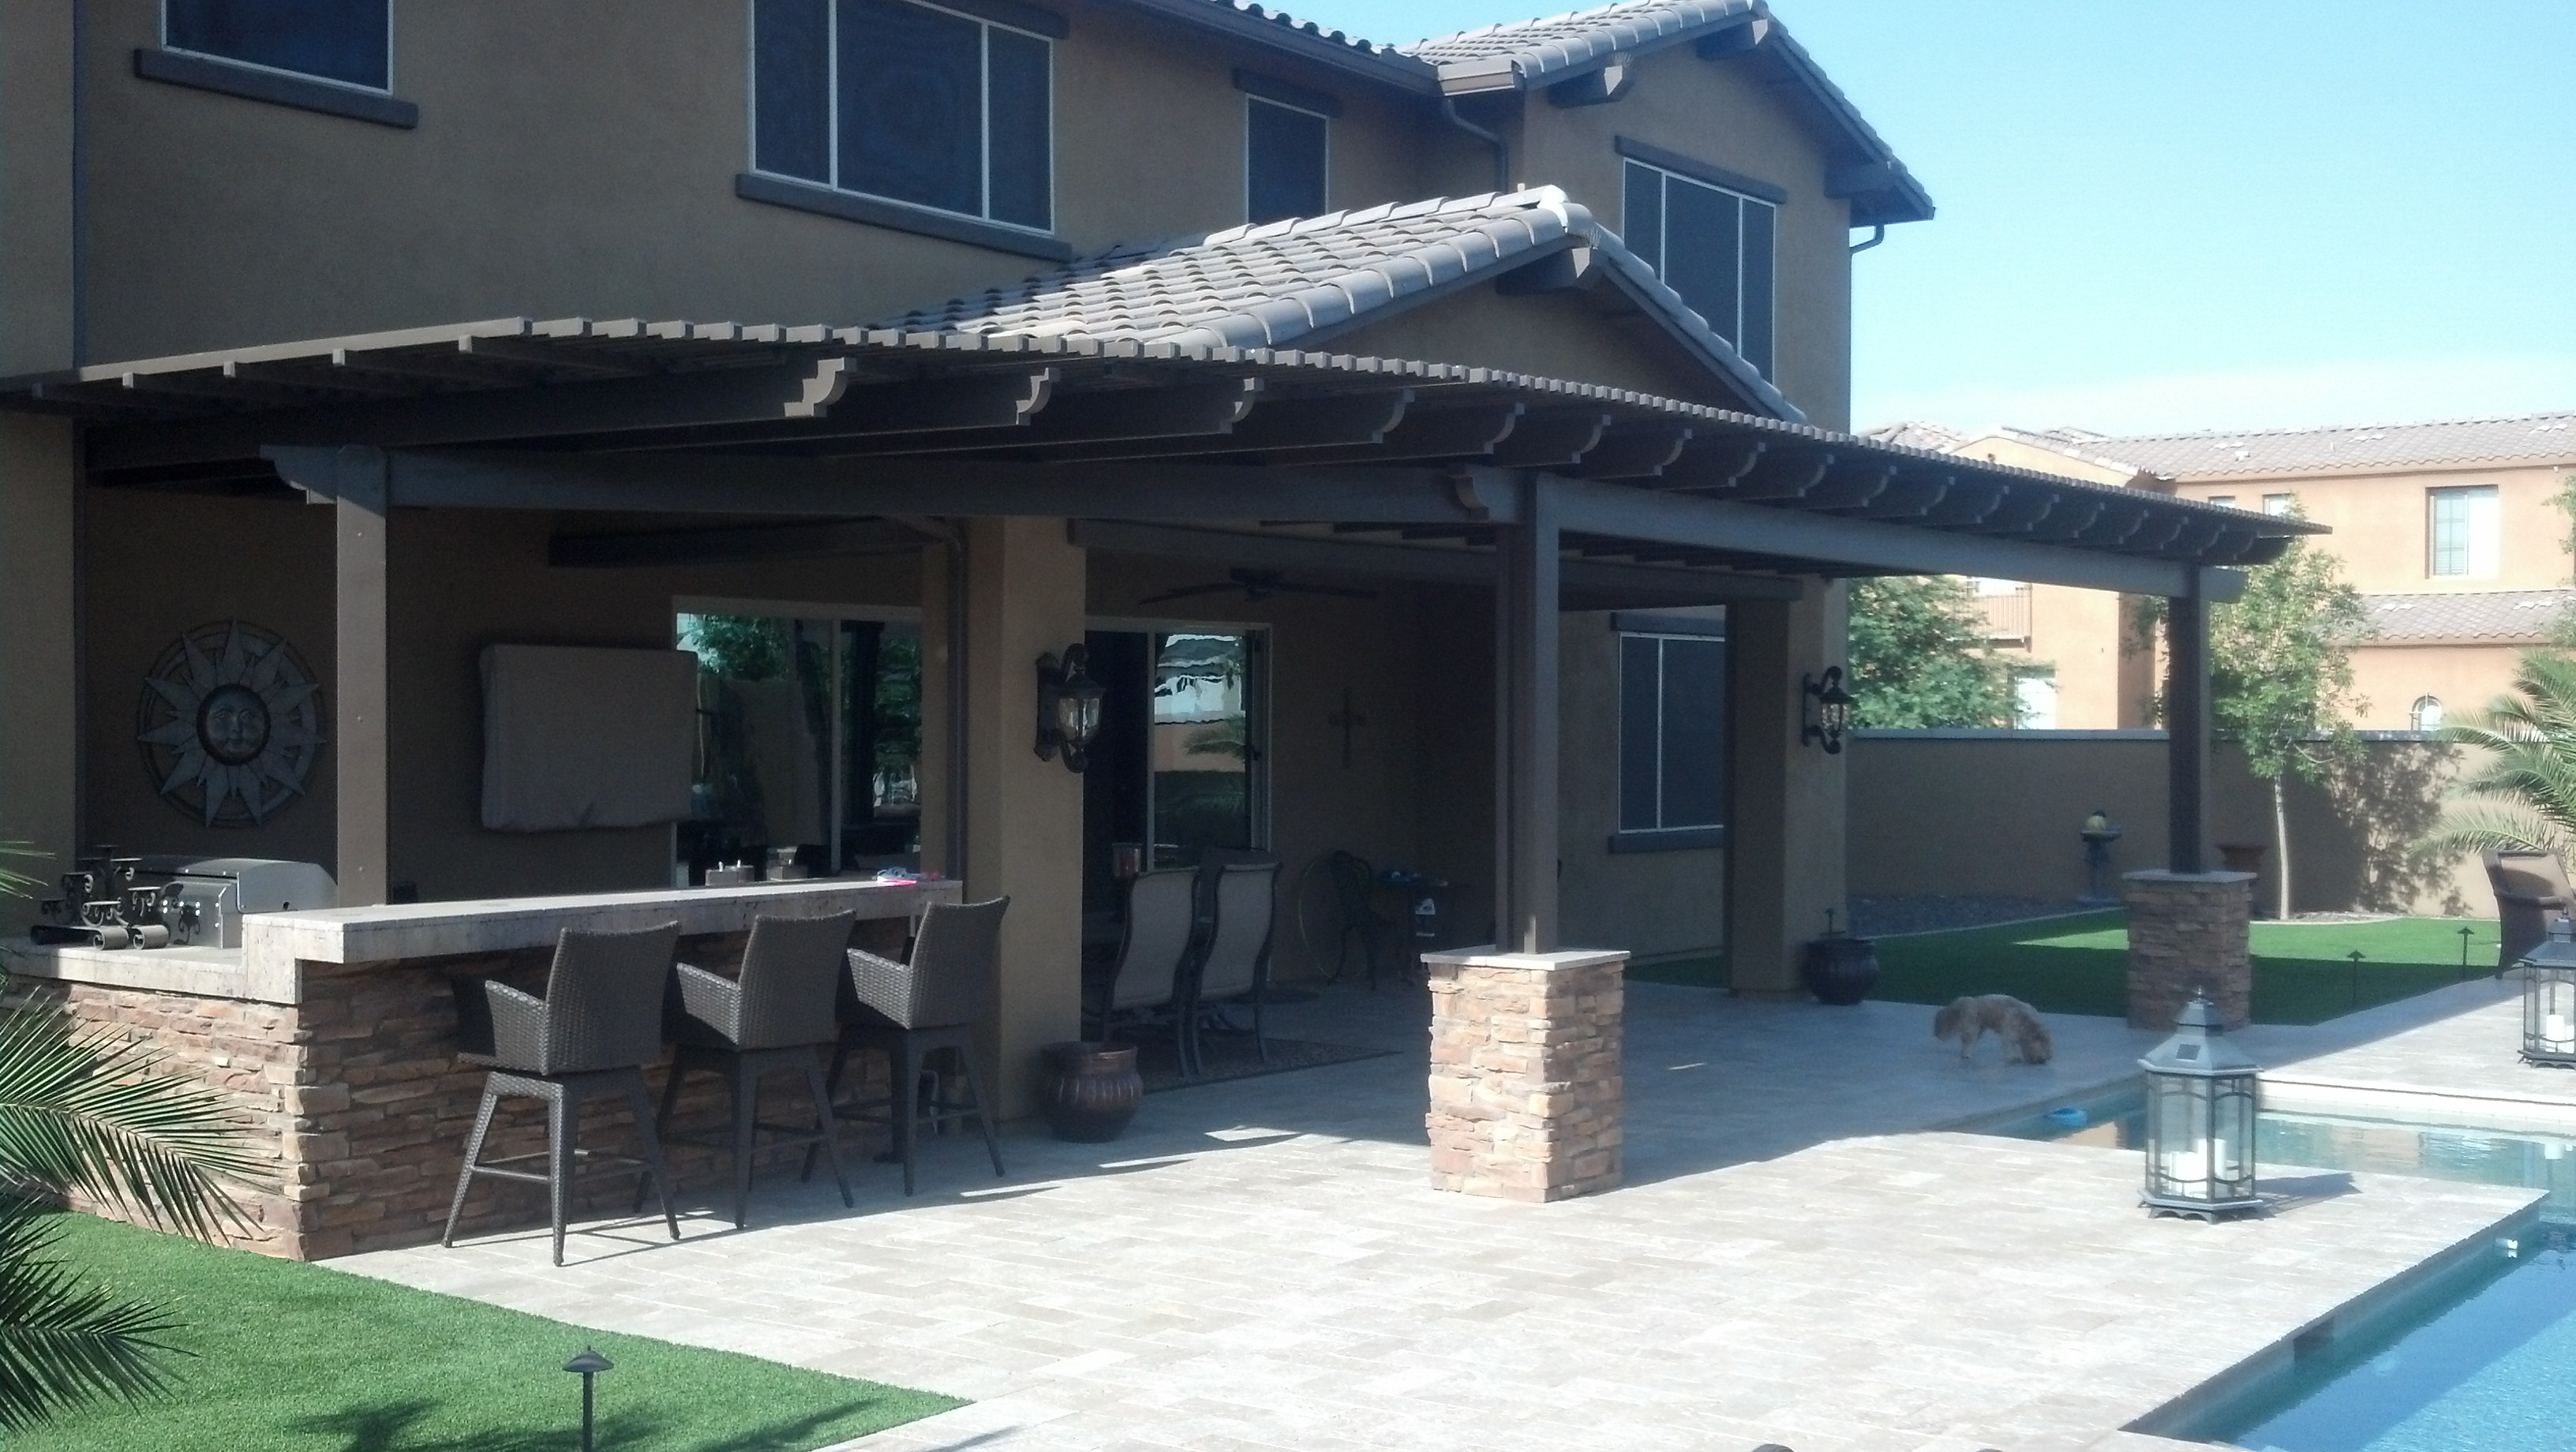 Alumawood Patio Covers Arizona Rain Gutters Shade Experts In Dimensions  3264 X 1840